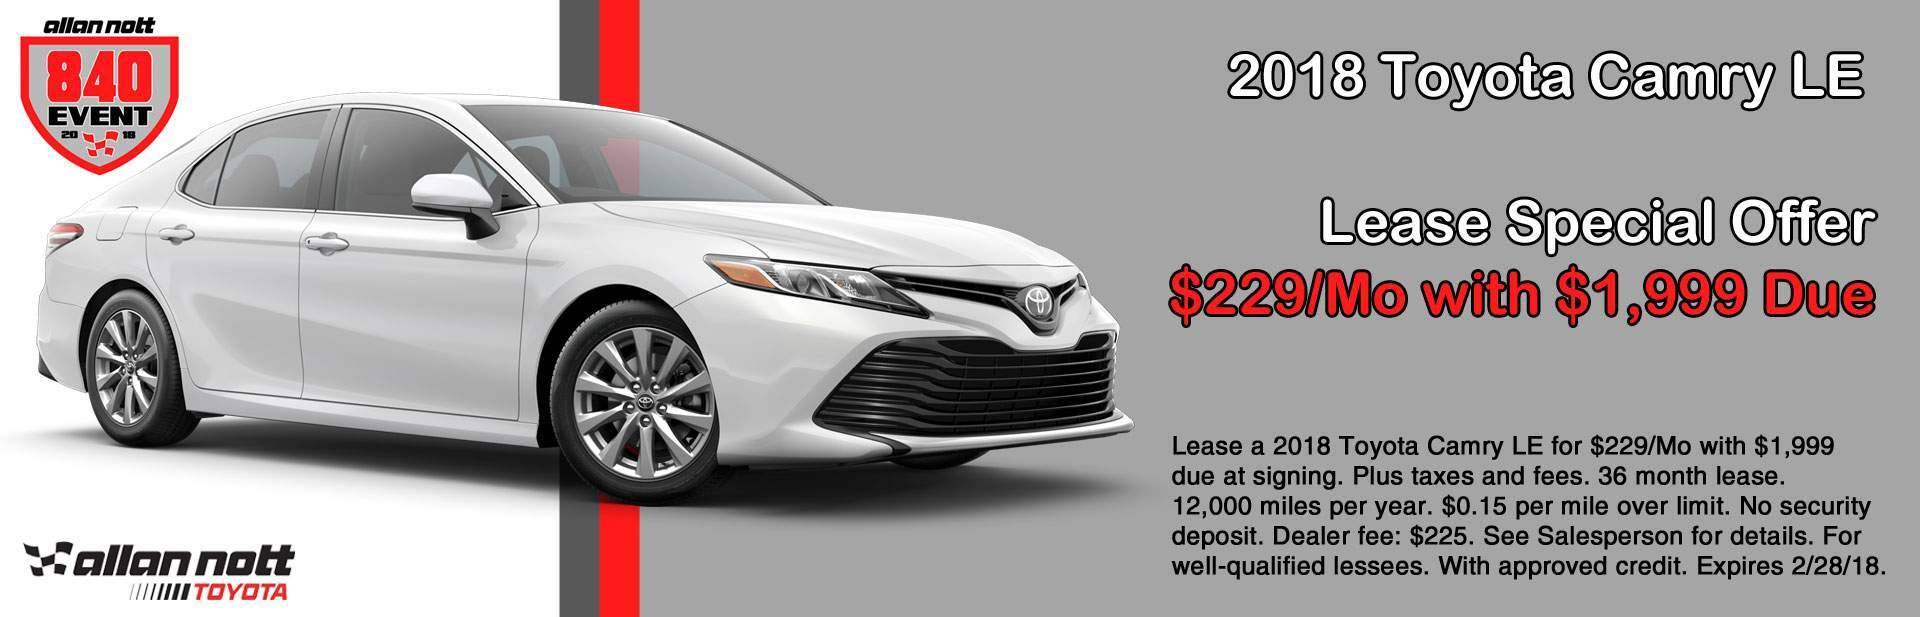 February 2018 Toyota Camry LE Lease Special